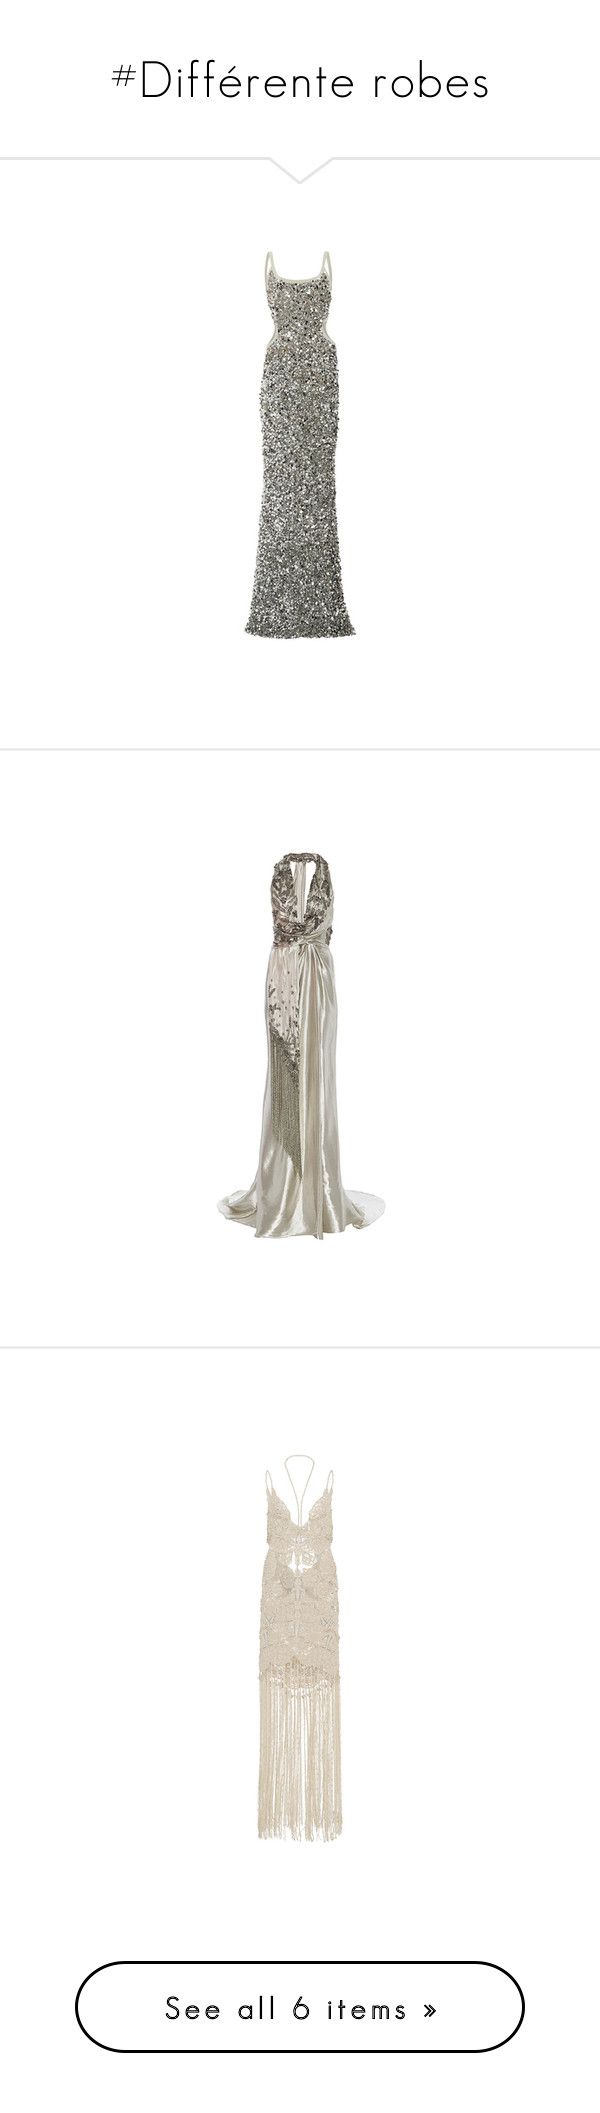 """""""#Différente robes"""" by lolgenie ❤ liked on Polyvore featuring dresses, gowns, marchesa, intimates, robes, lace dressing gown, lace robe, hooded bathrobe, wrap robe and agent provocateur"""